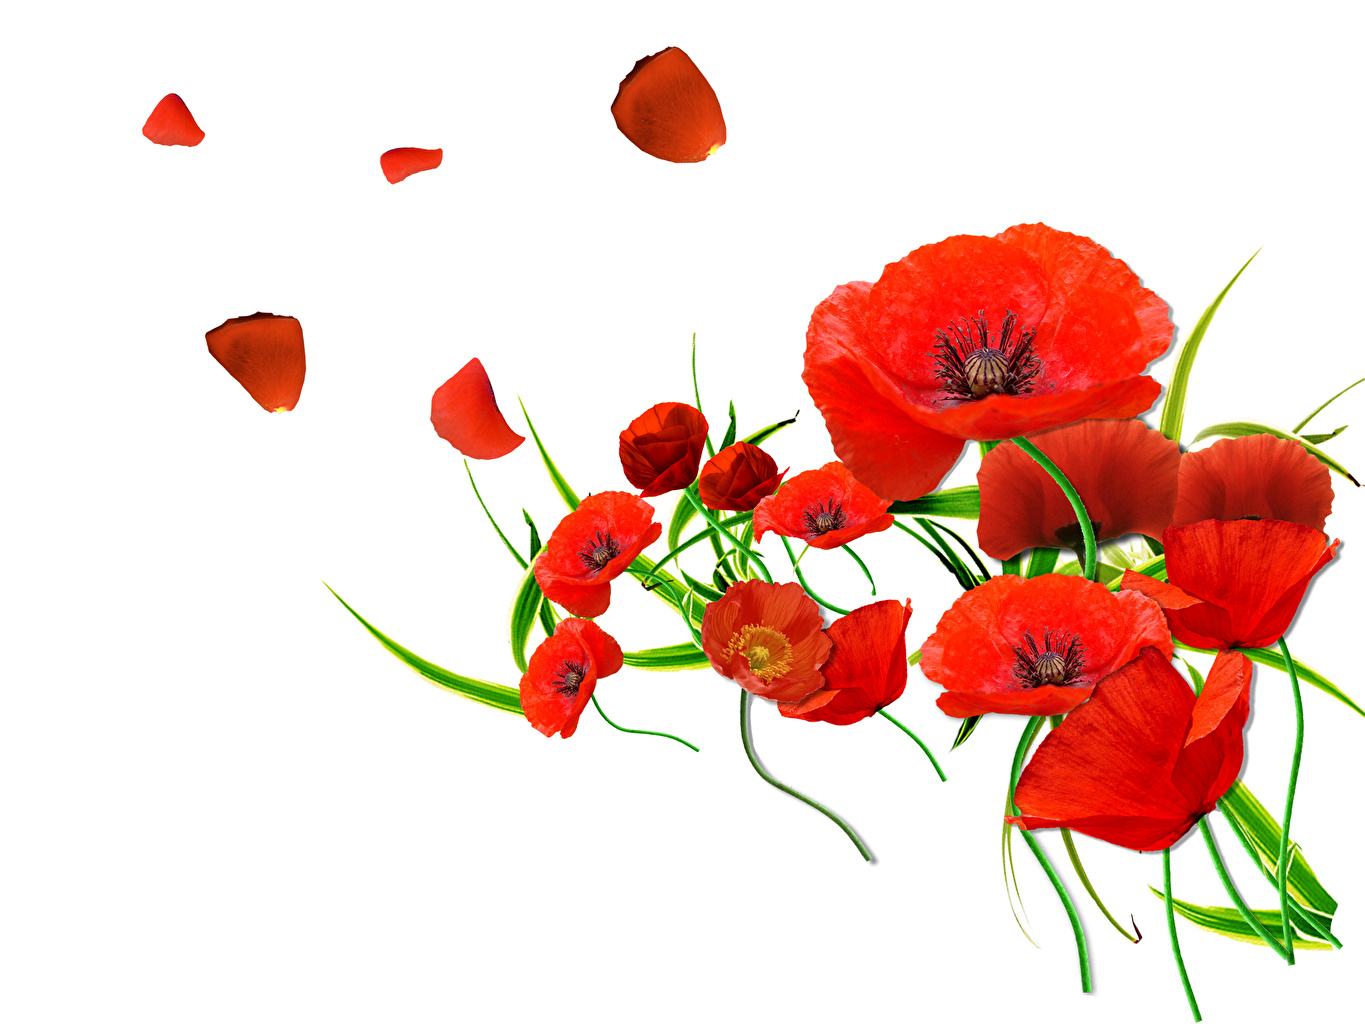 Image Red Flowers papaver Closeup White background